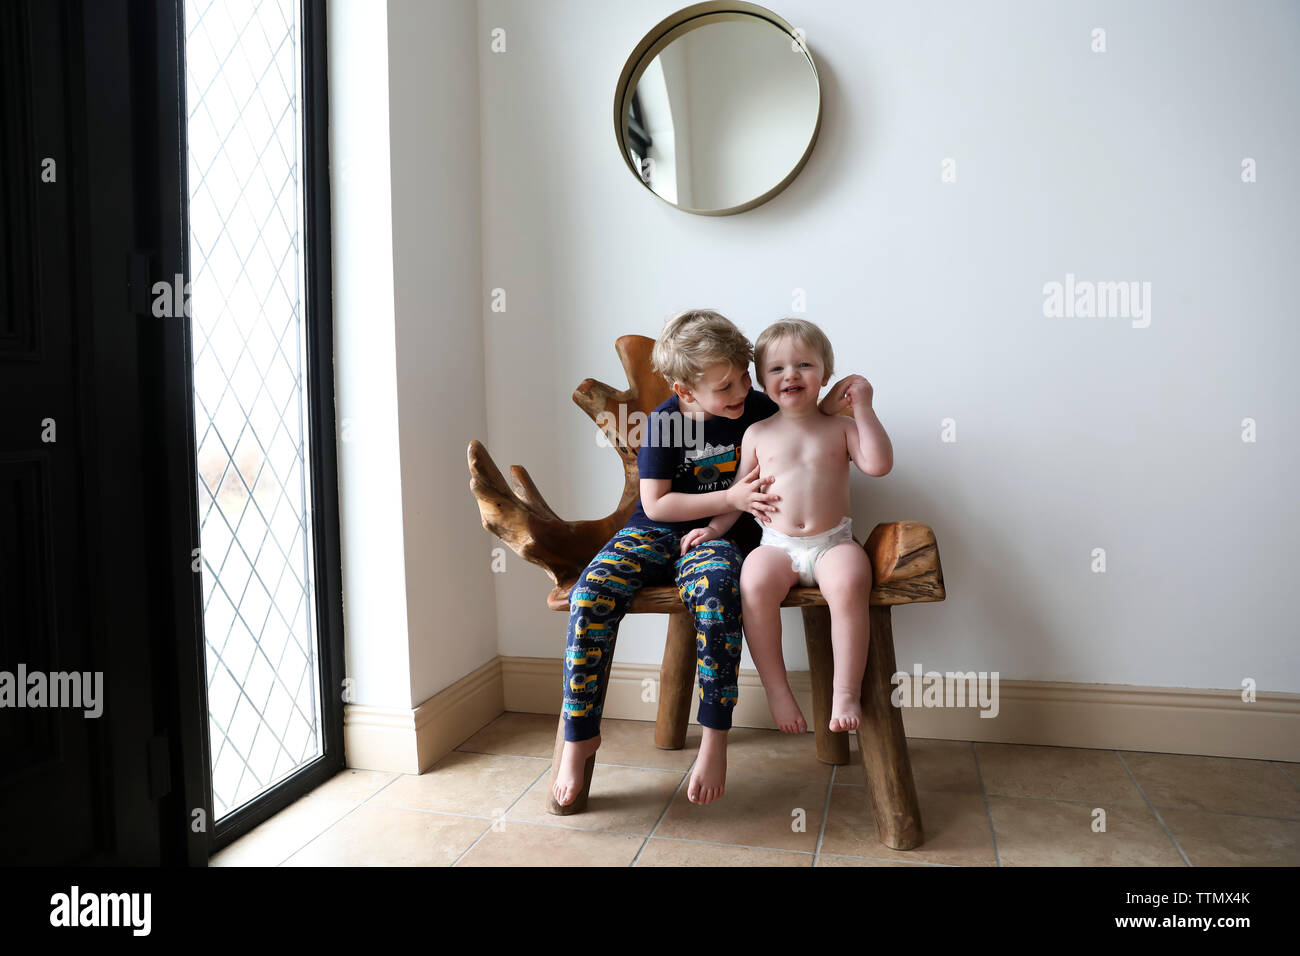 Happy Brothers Hug While Sitting on Indoors Organic Wooden Bench Stock Photo